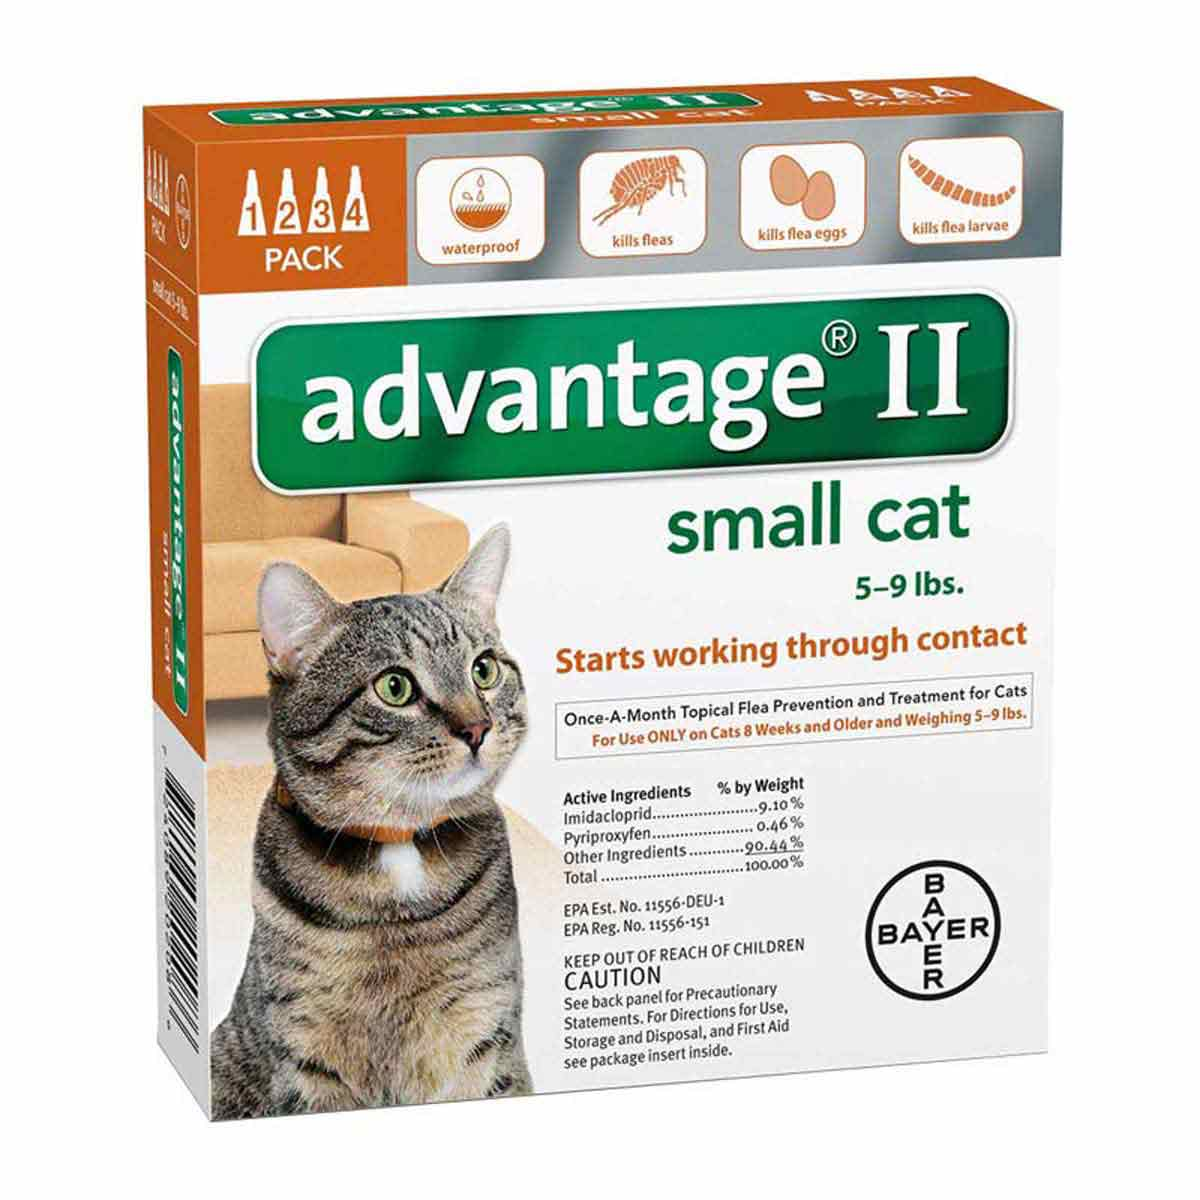 4 Pack Advantage II Orange Flea Treatment for Cats 5-9 lbs